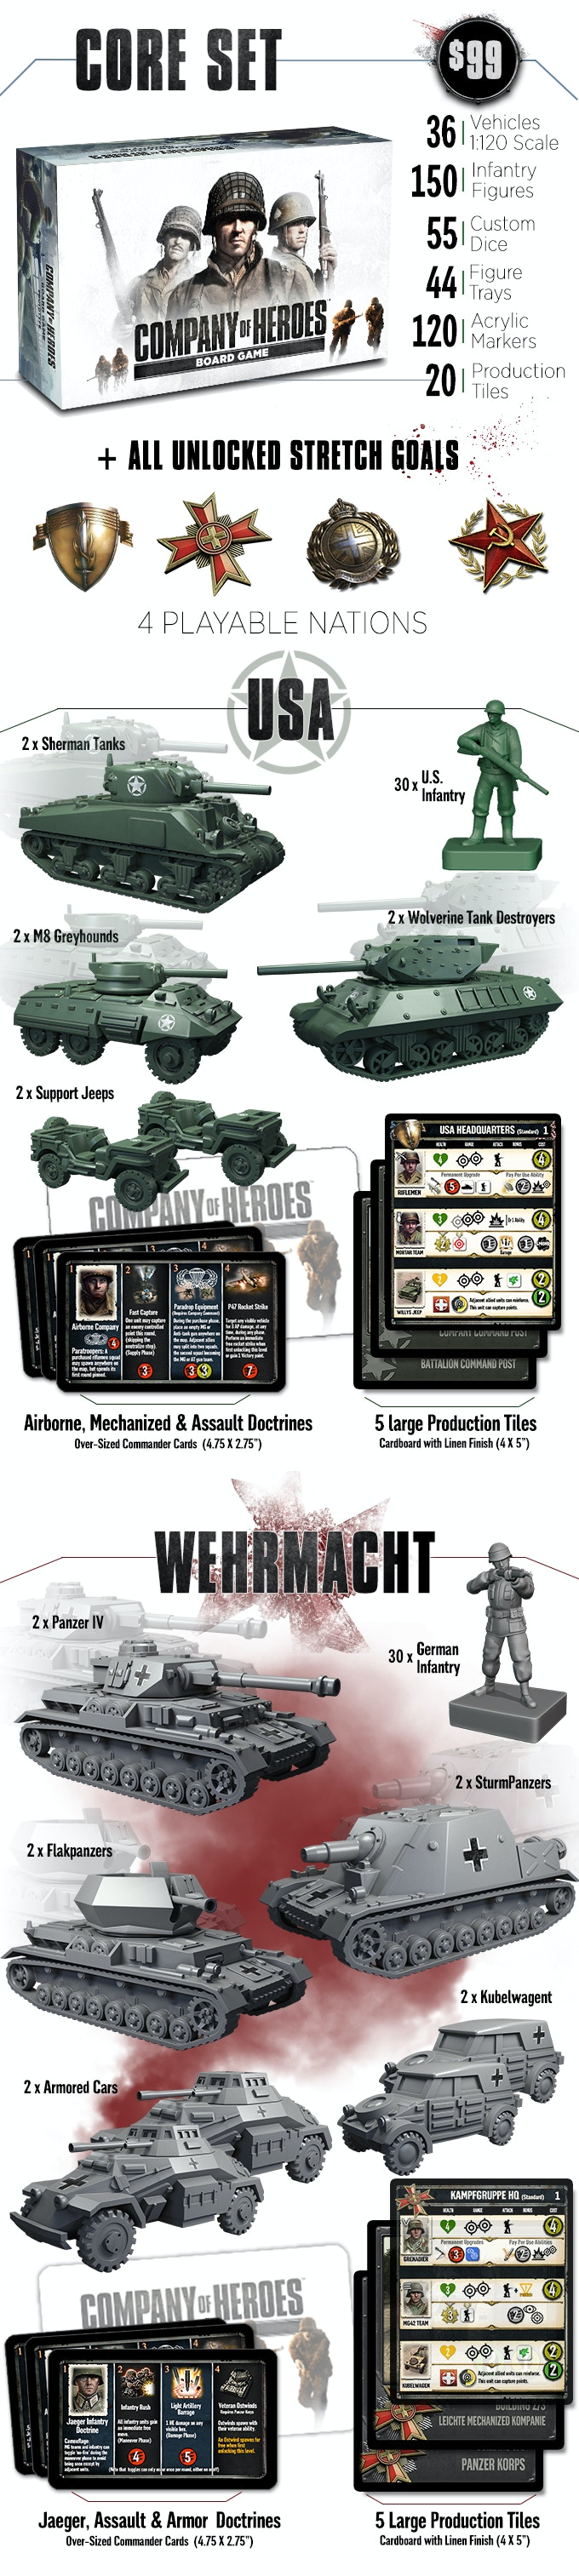 Not shown but 3 Mortars, 3 MG's and 3 Anti-Tank guns are also included for each faction.